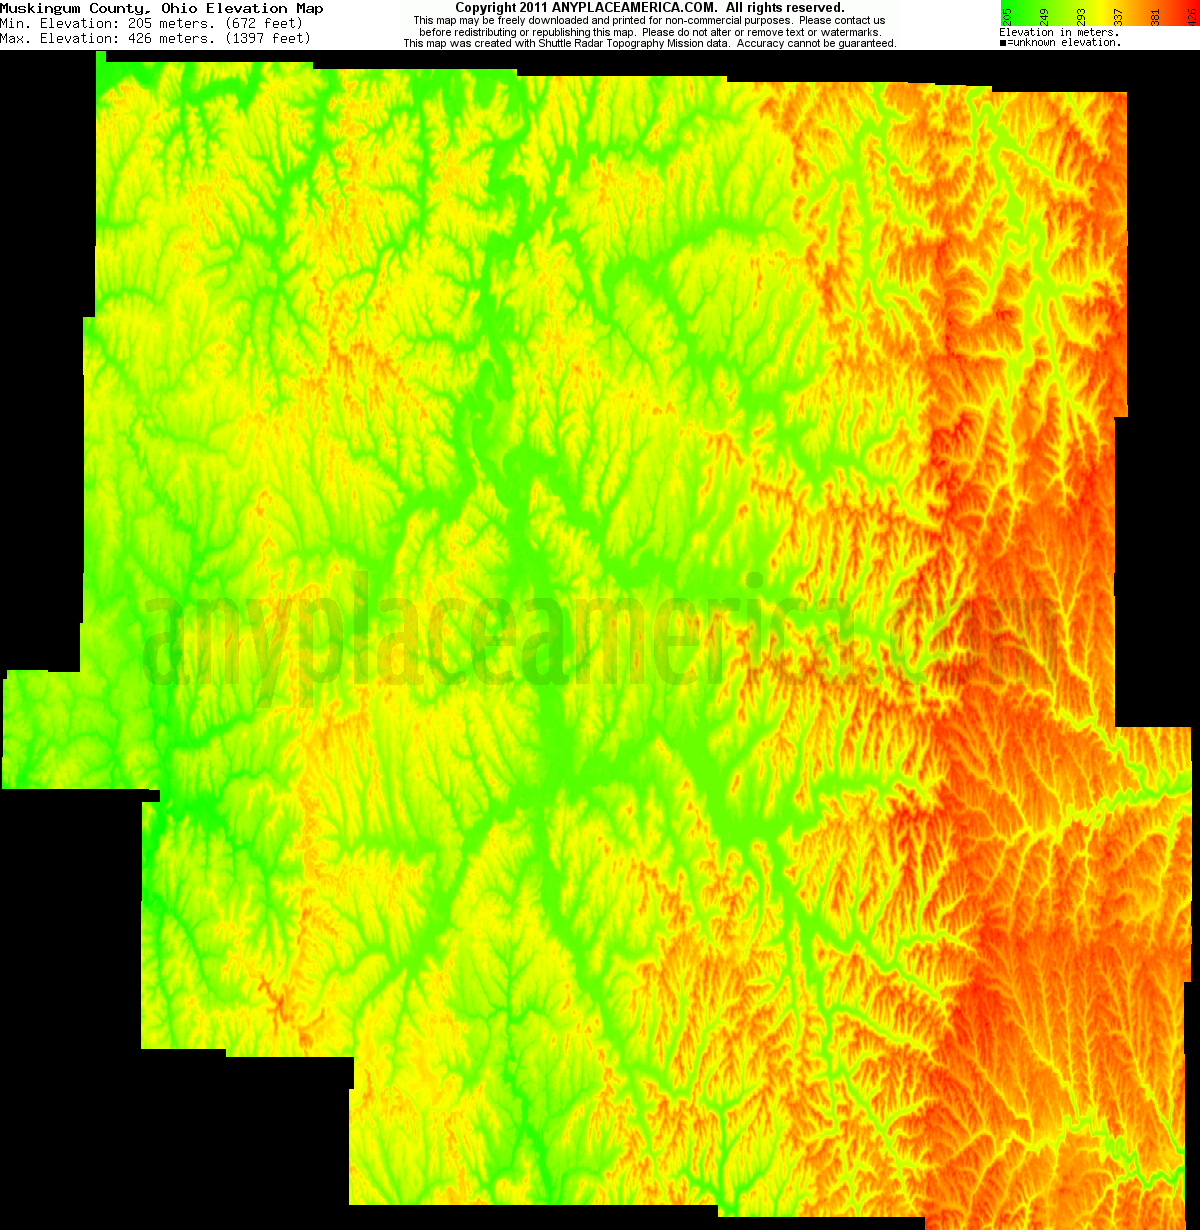 Ohio muskingum county norwich - Download Muskingum County Elevation Map